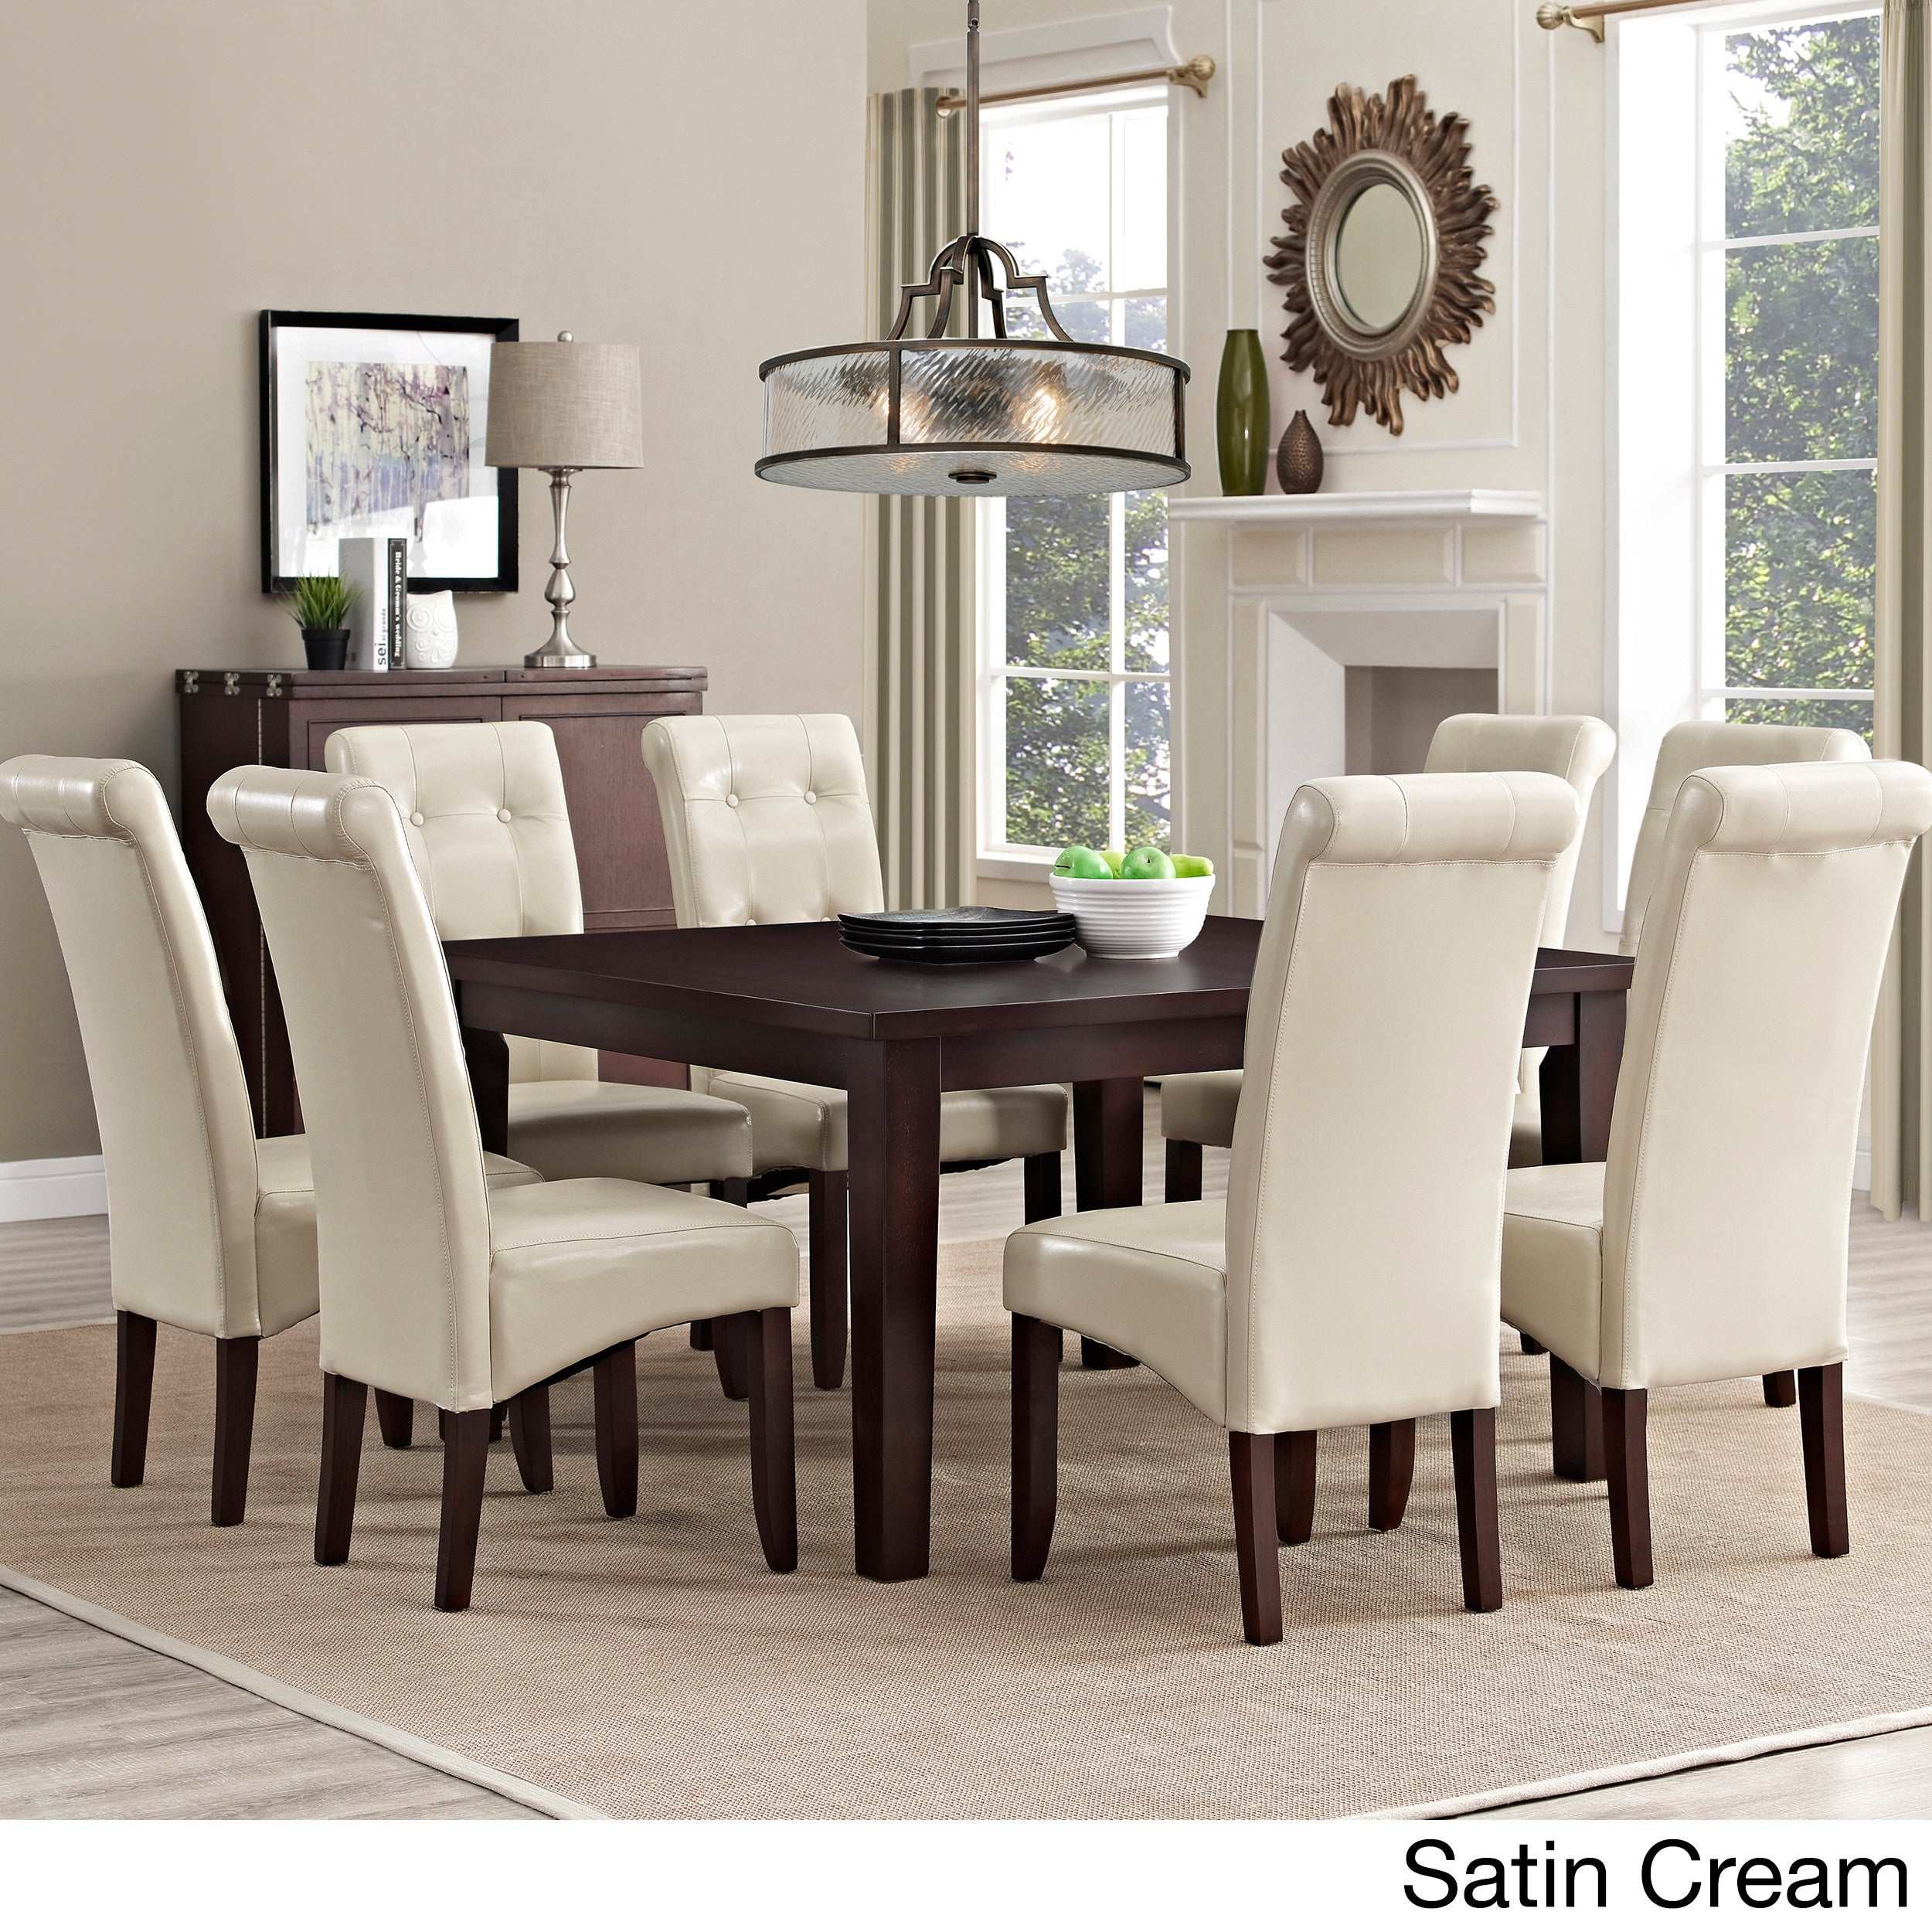 Buy Cream Kitchen U0026 Dining Room Sets Online At Overstock.com | Our Best Dining  Room U0026 Bar Furniture Deals